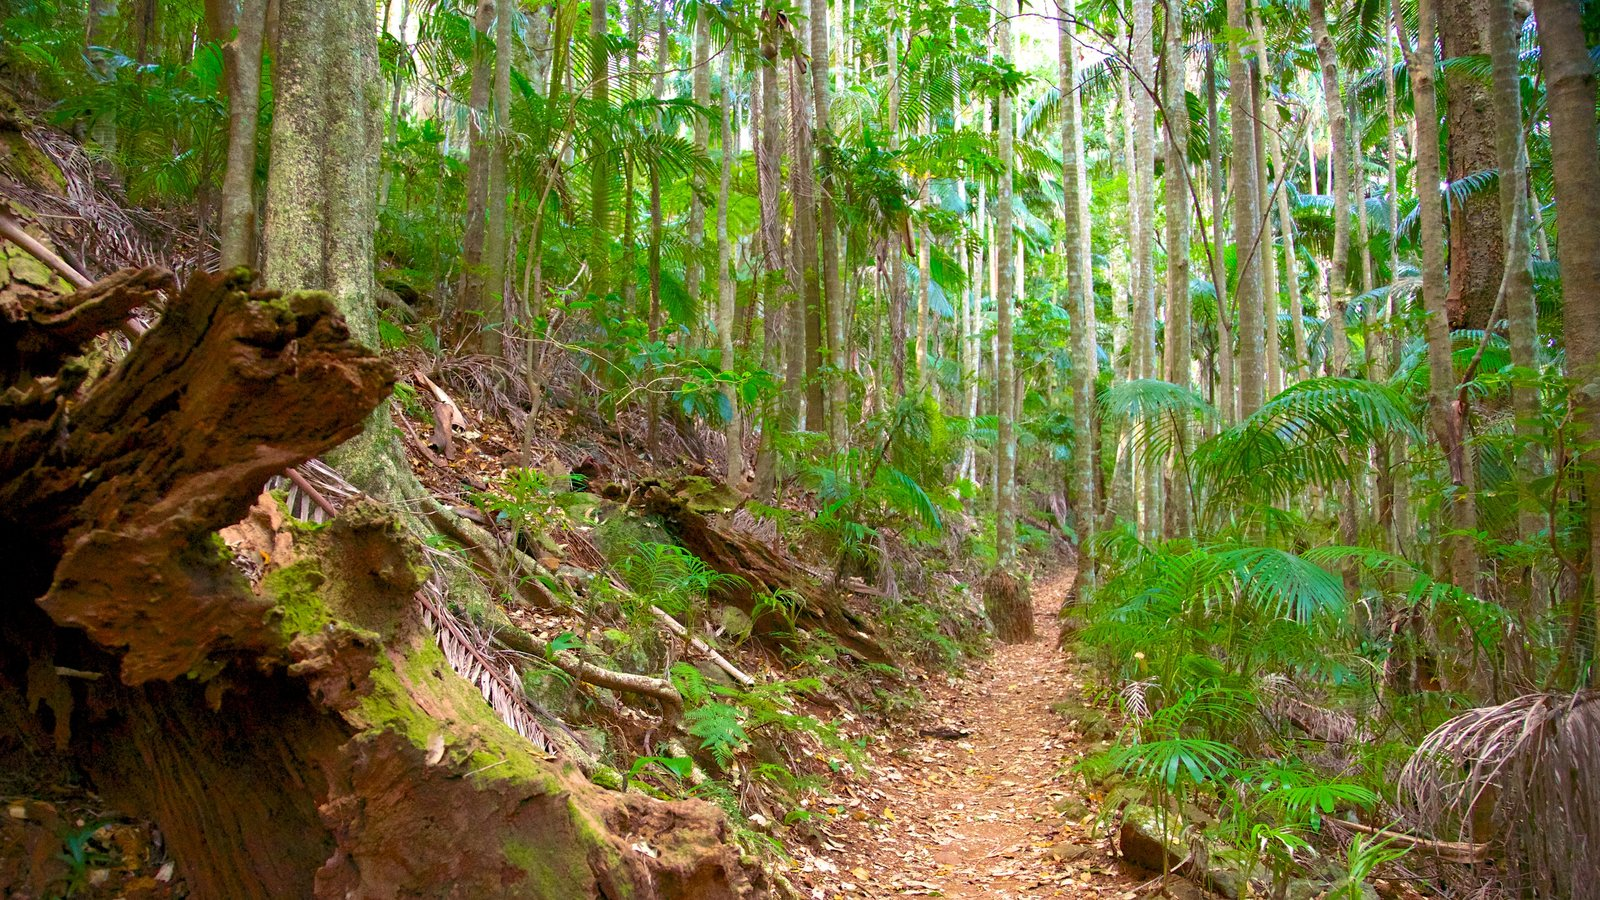 Tamborine National Park Palm Grove Section which includes forests